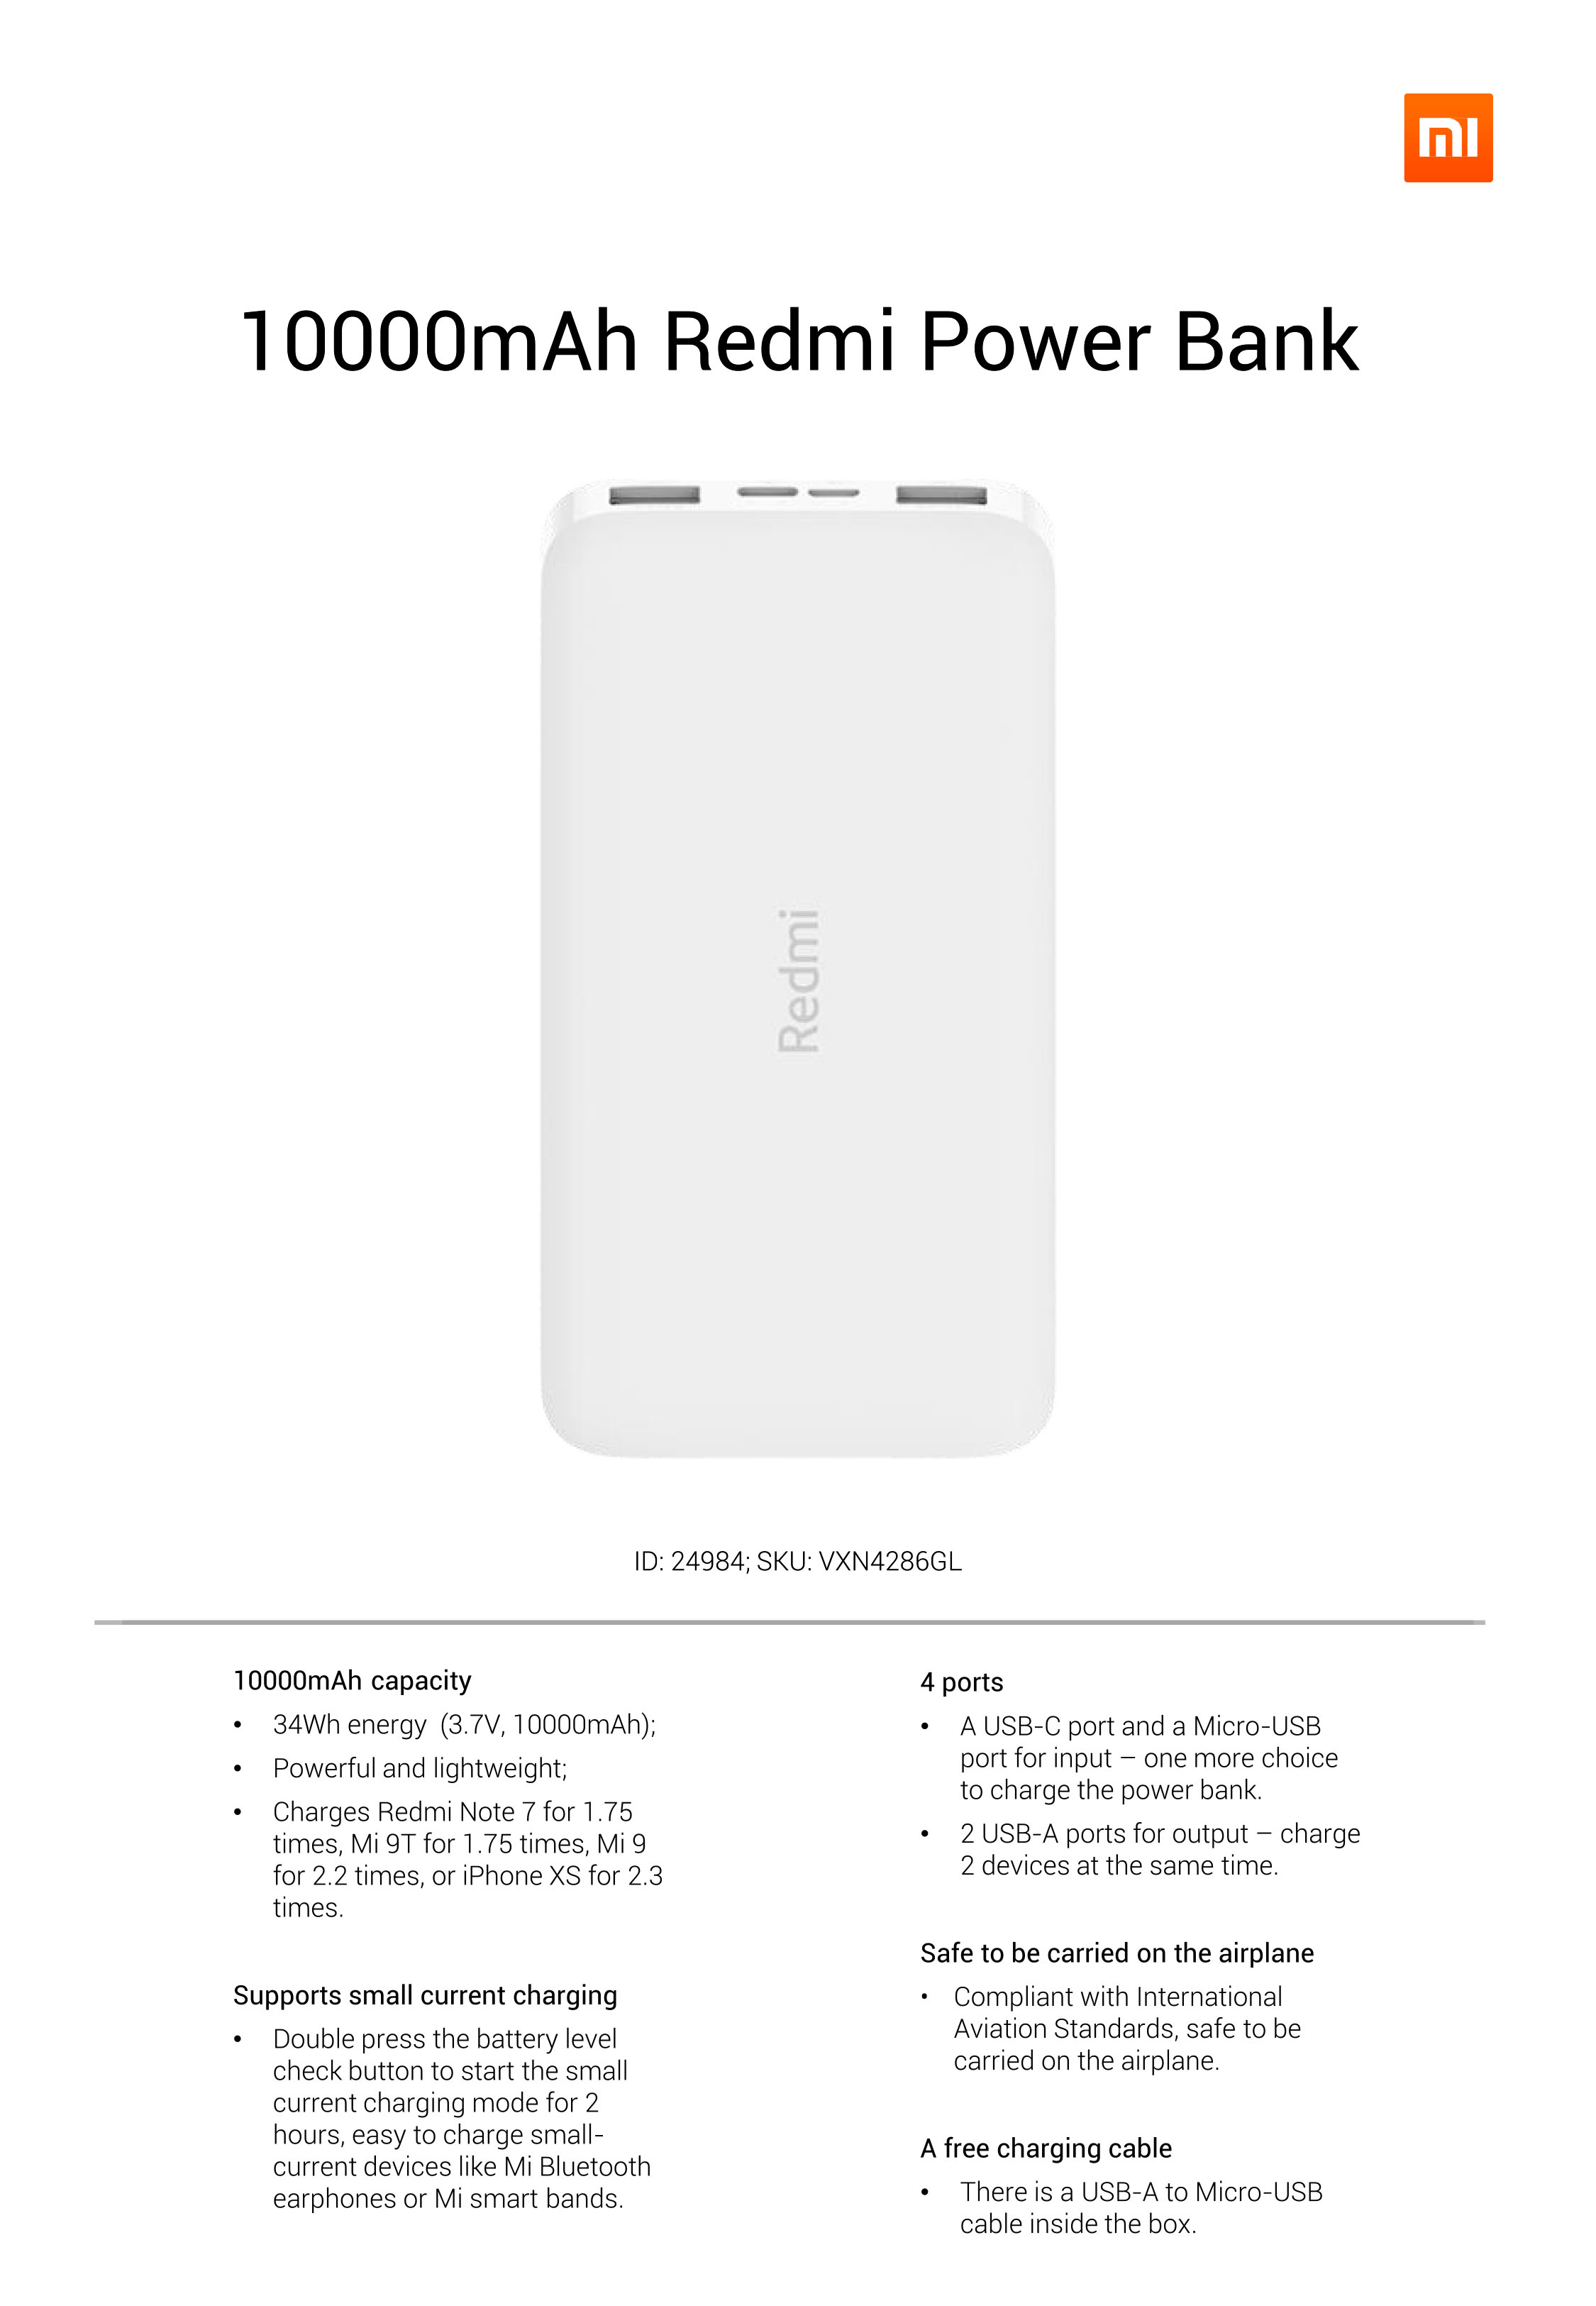 10000mah-redmi-power-bank-1.jpg?v=159471